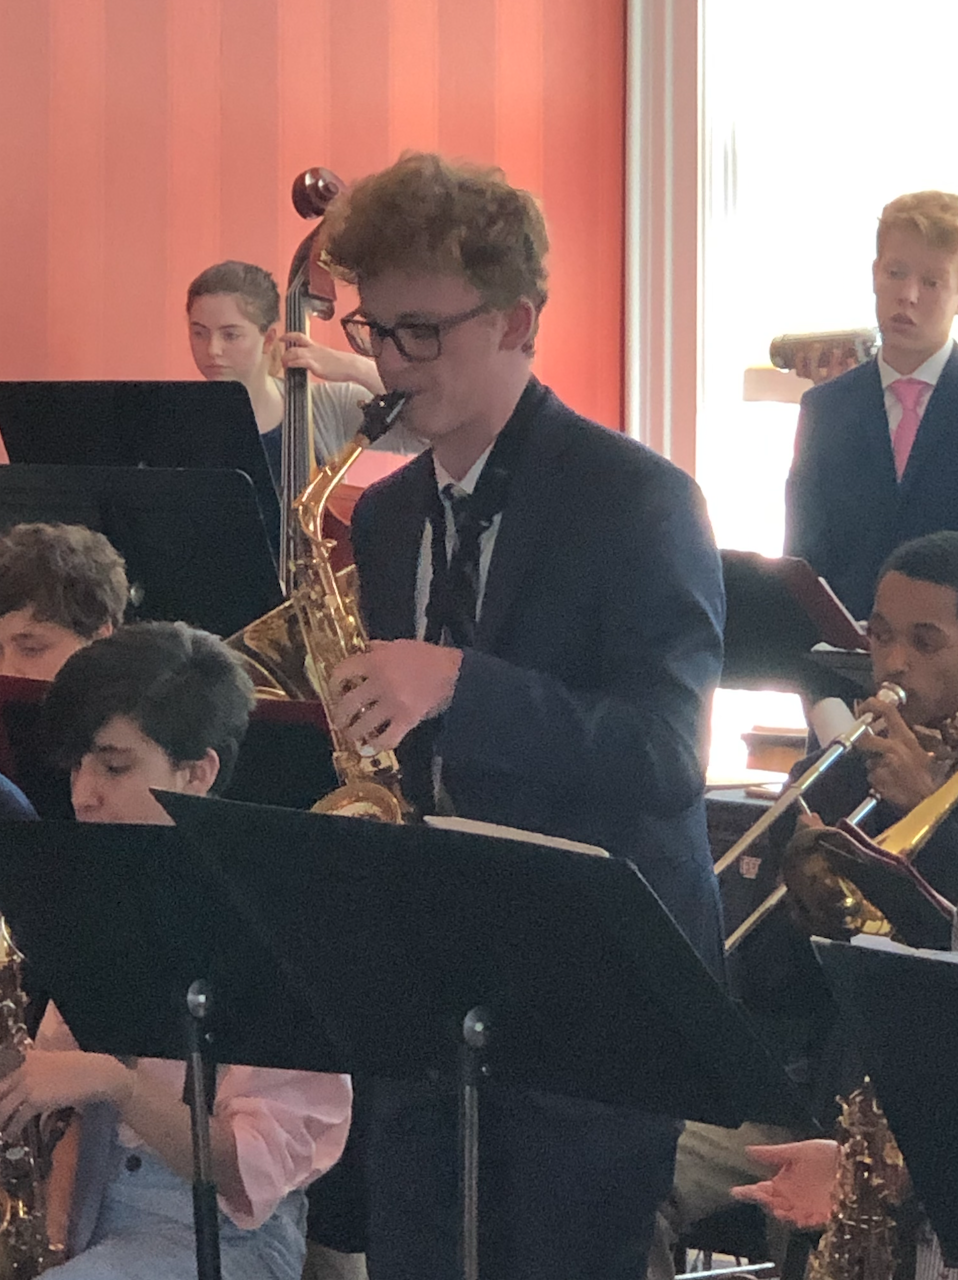 Senior+Charles+Dickson+soloing+in+his+final+Jazz+Band+concert+at+the+Hastings+Michigan+Jazz+Festival.+He+performed+with+the+Jazz+Lab+Band+playing+the+tune+Caravan+by+Duke+Ellington.+Charles+also+went+on+to+be+nominated+for+an+honorable+mention+in+the+Michigan+Youth+Arts+Festival+Jazz+Band+top+group.